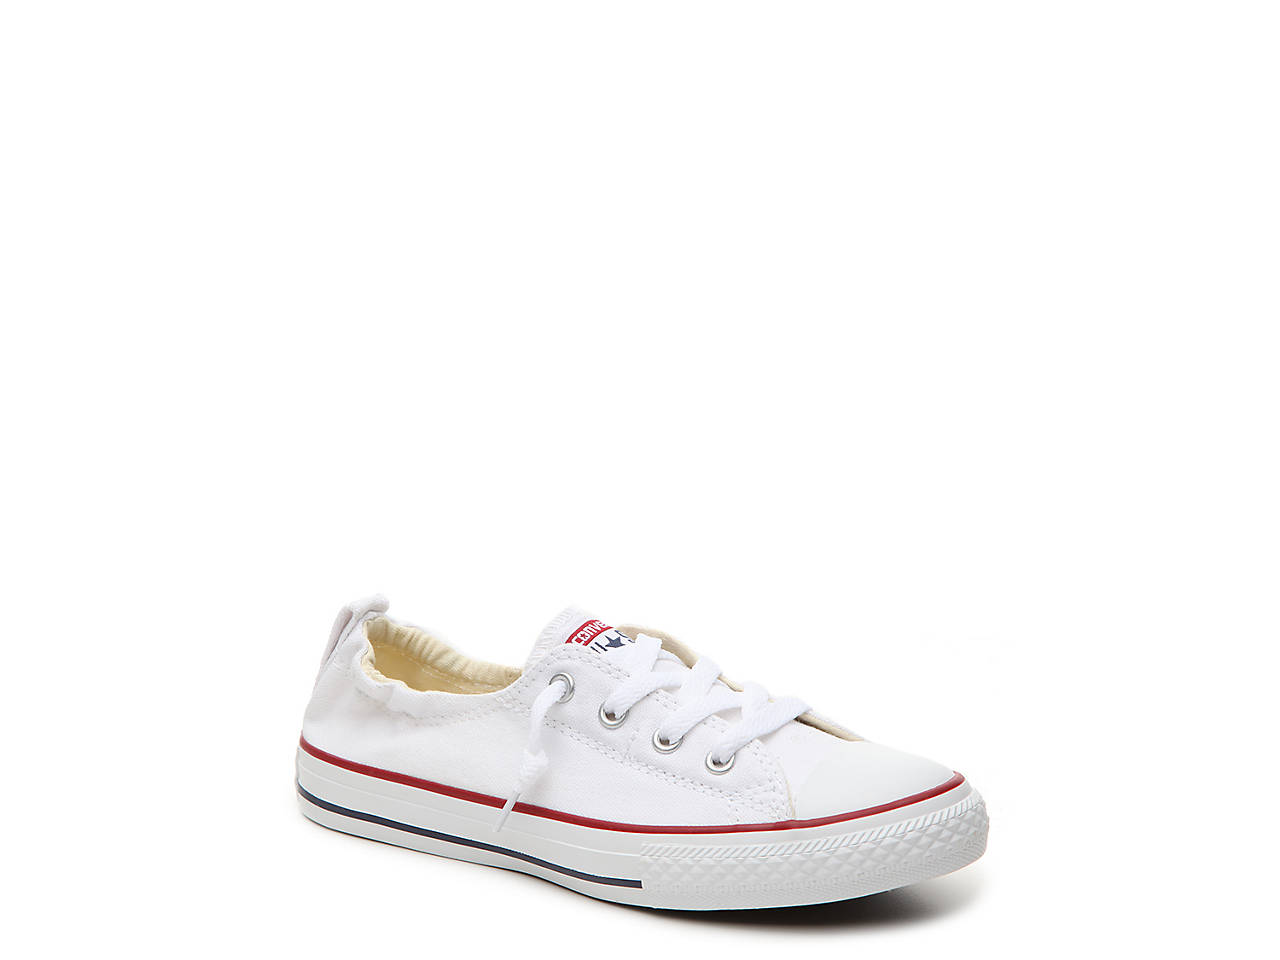 2ff6e70f3c5702 Converse Chuck Taylor All Star Shoreline Toddler   Youth Slip-On ...